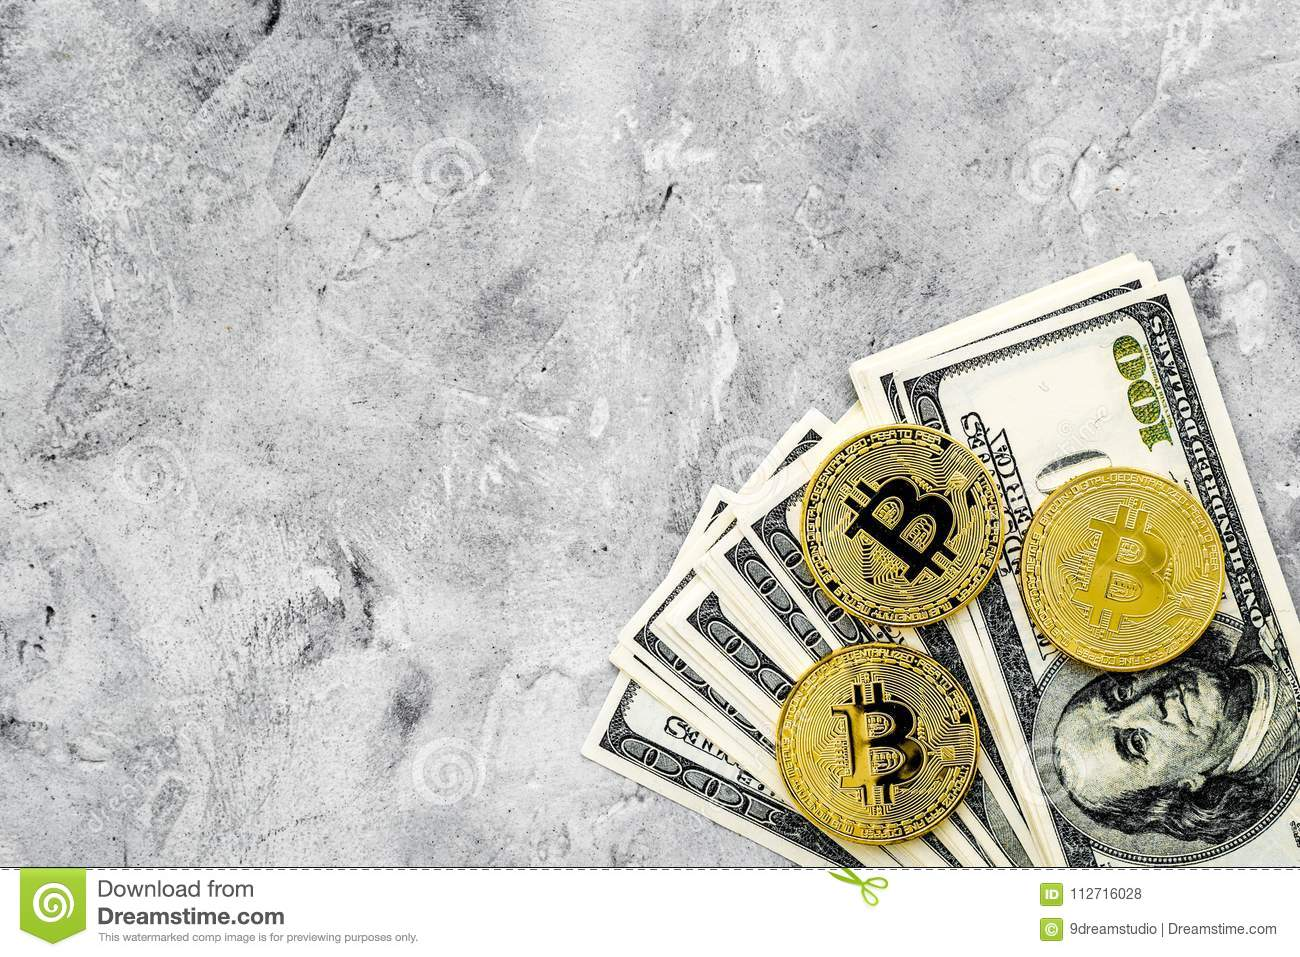 Bitcoin Digital Money For Finance And Online Buy Or Sell